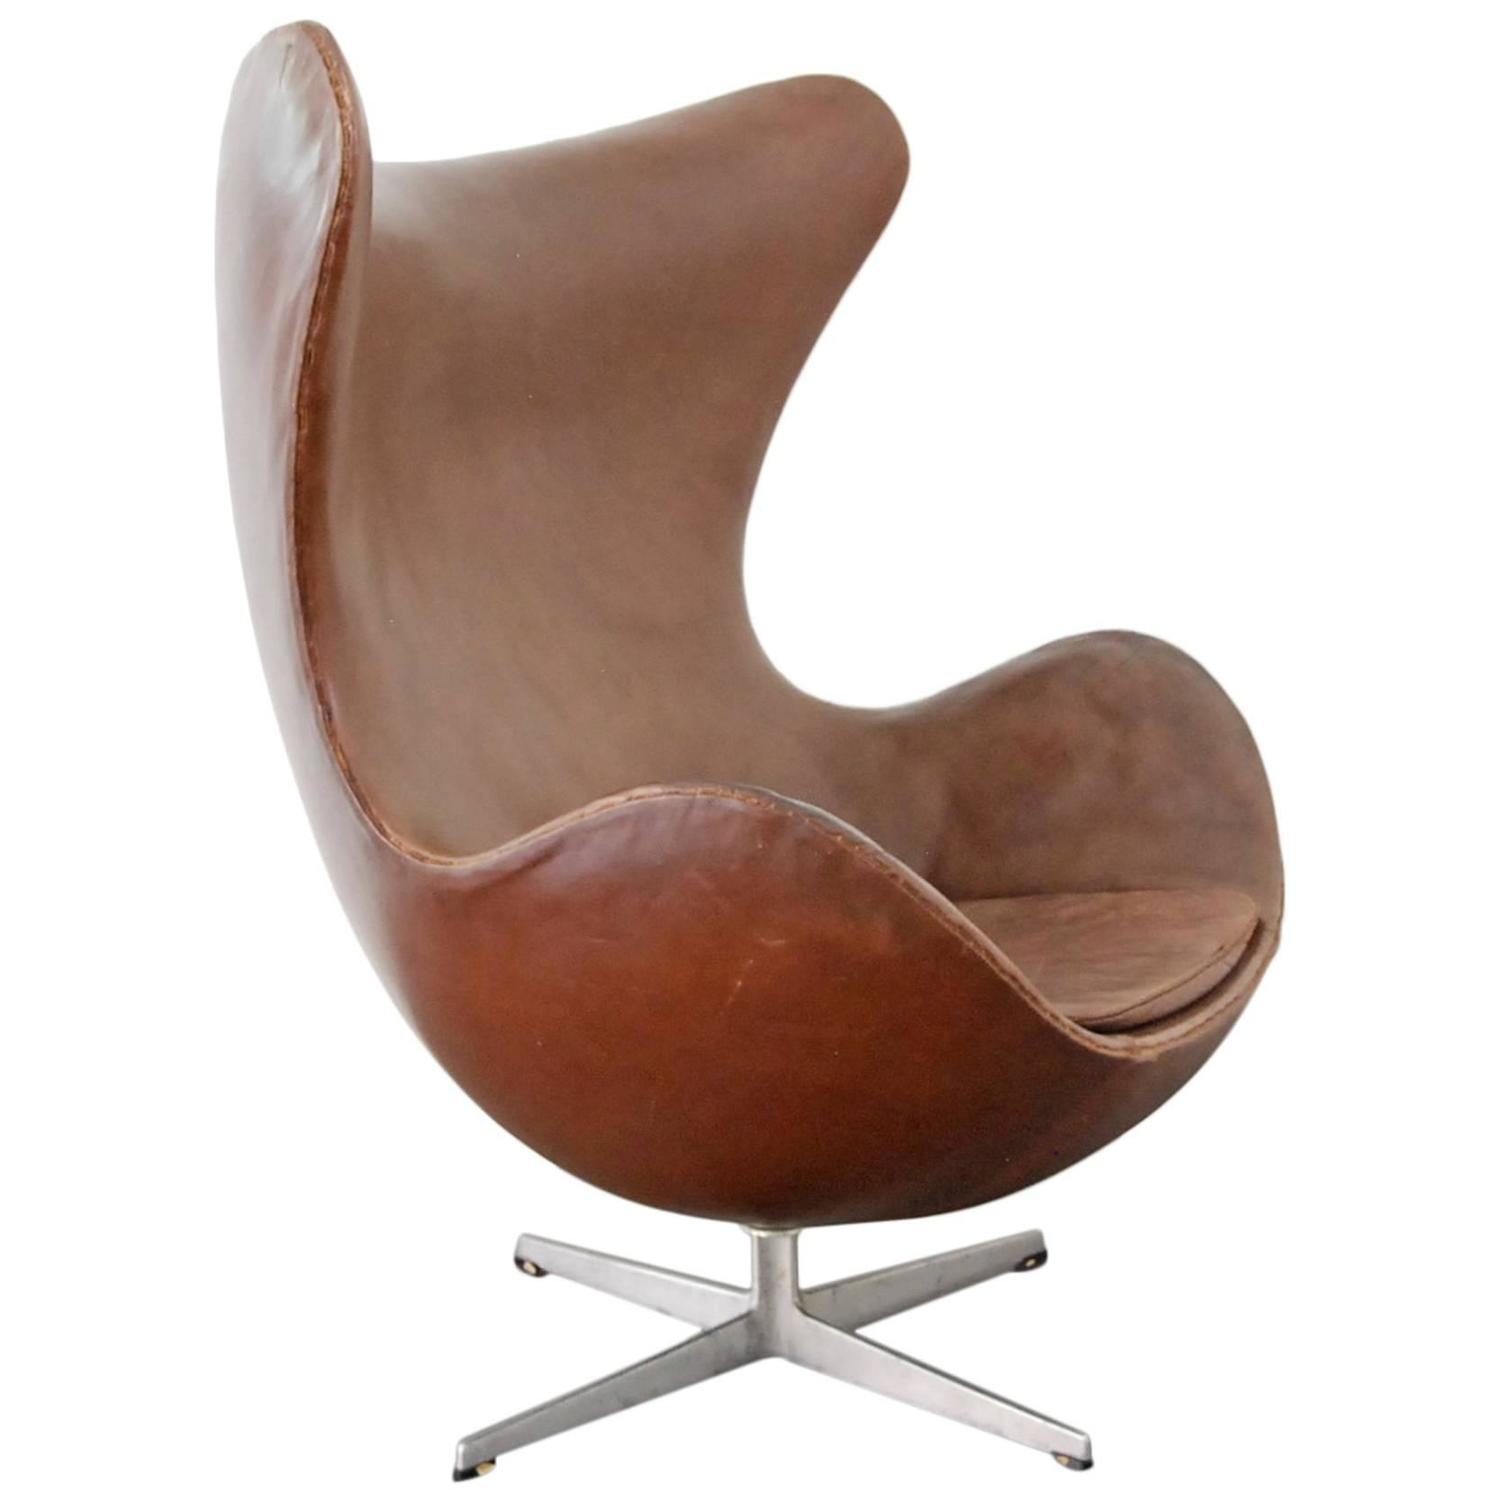 Arne Jacobsen Egg Chair Arne Jacobsen Quotegg Quot Chair For Sale At 1stdibs